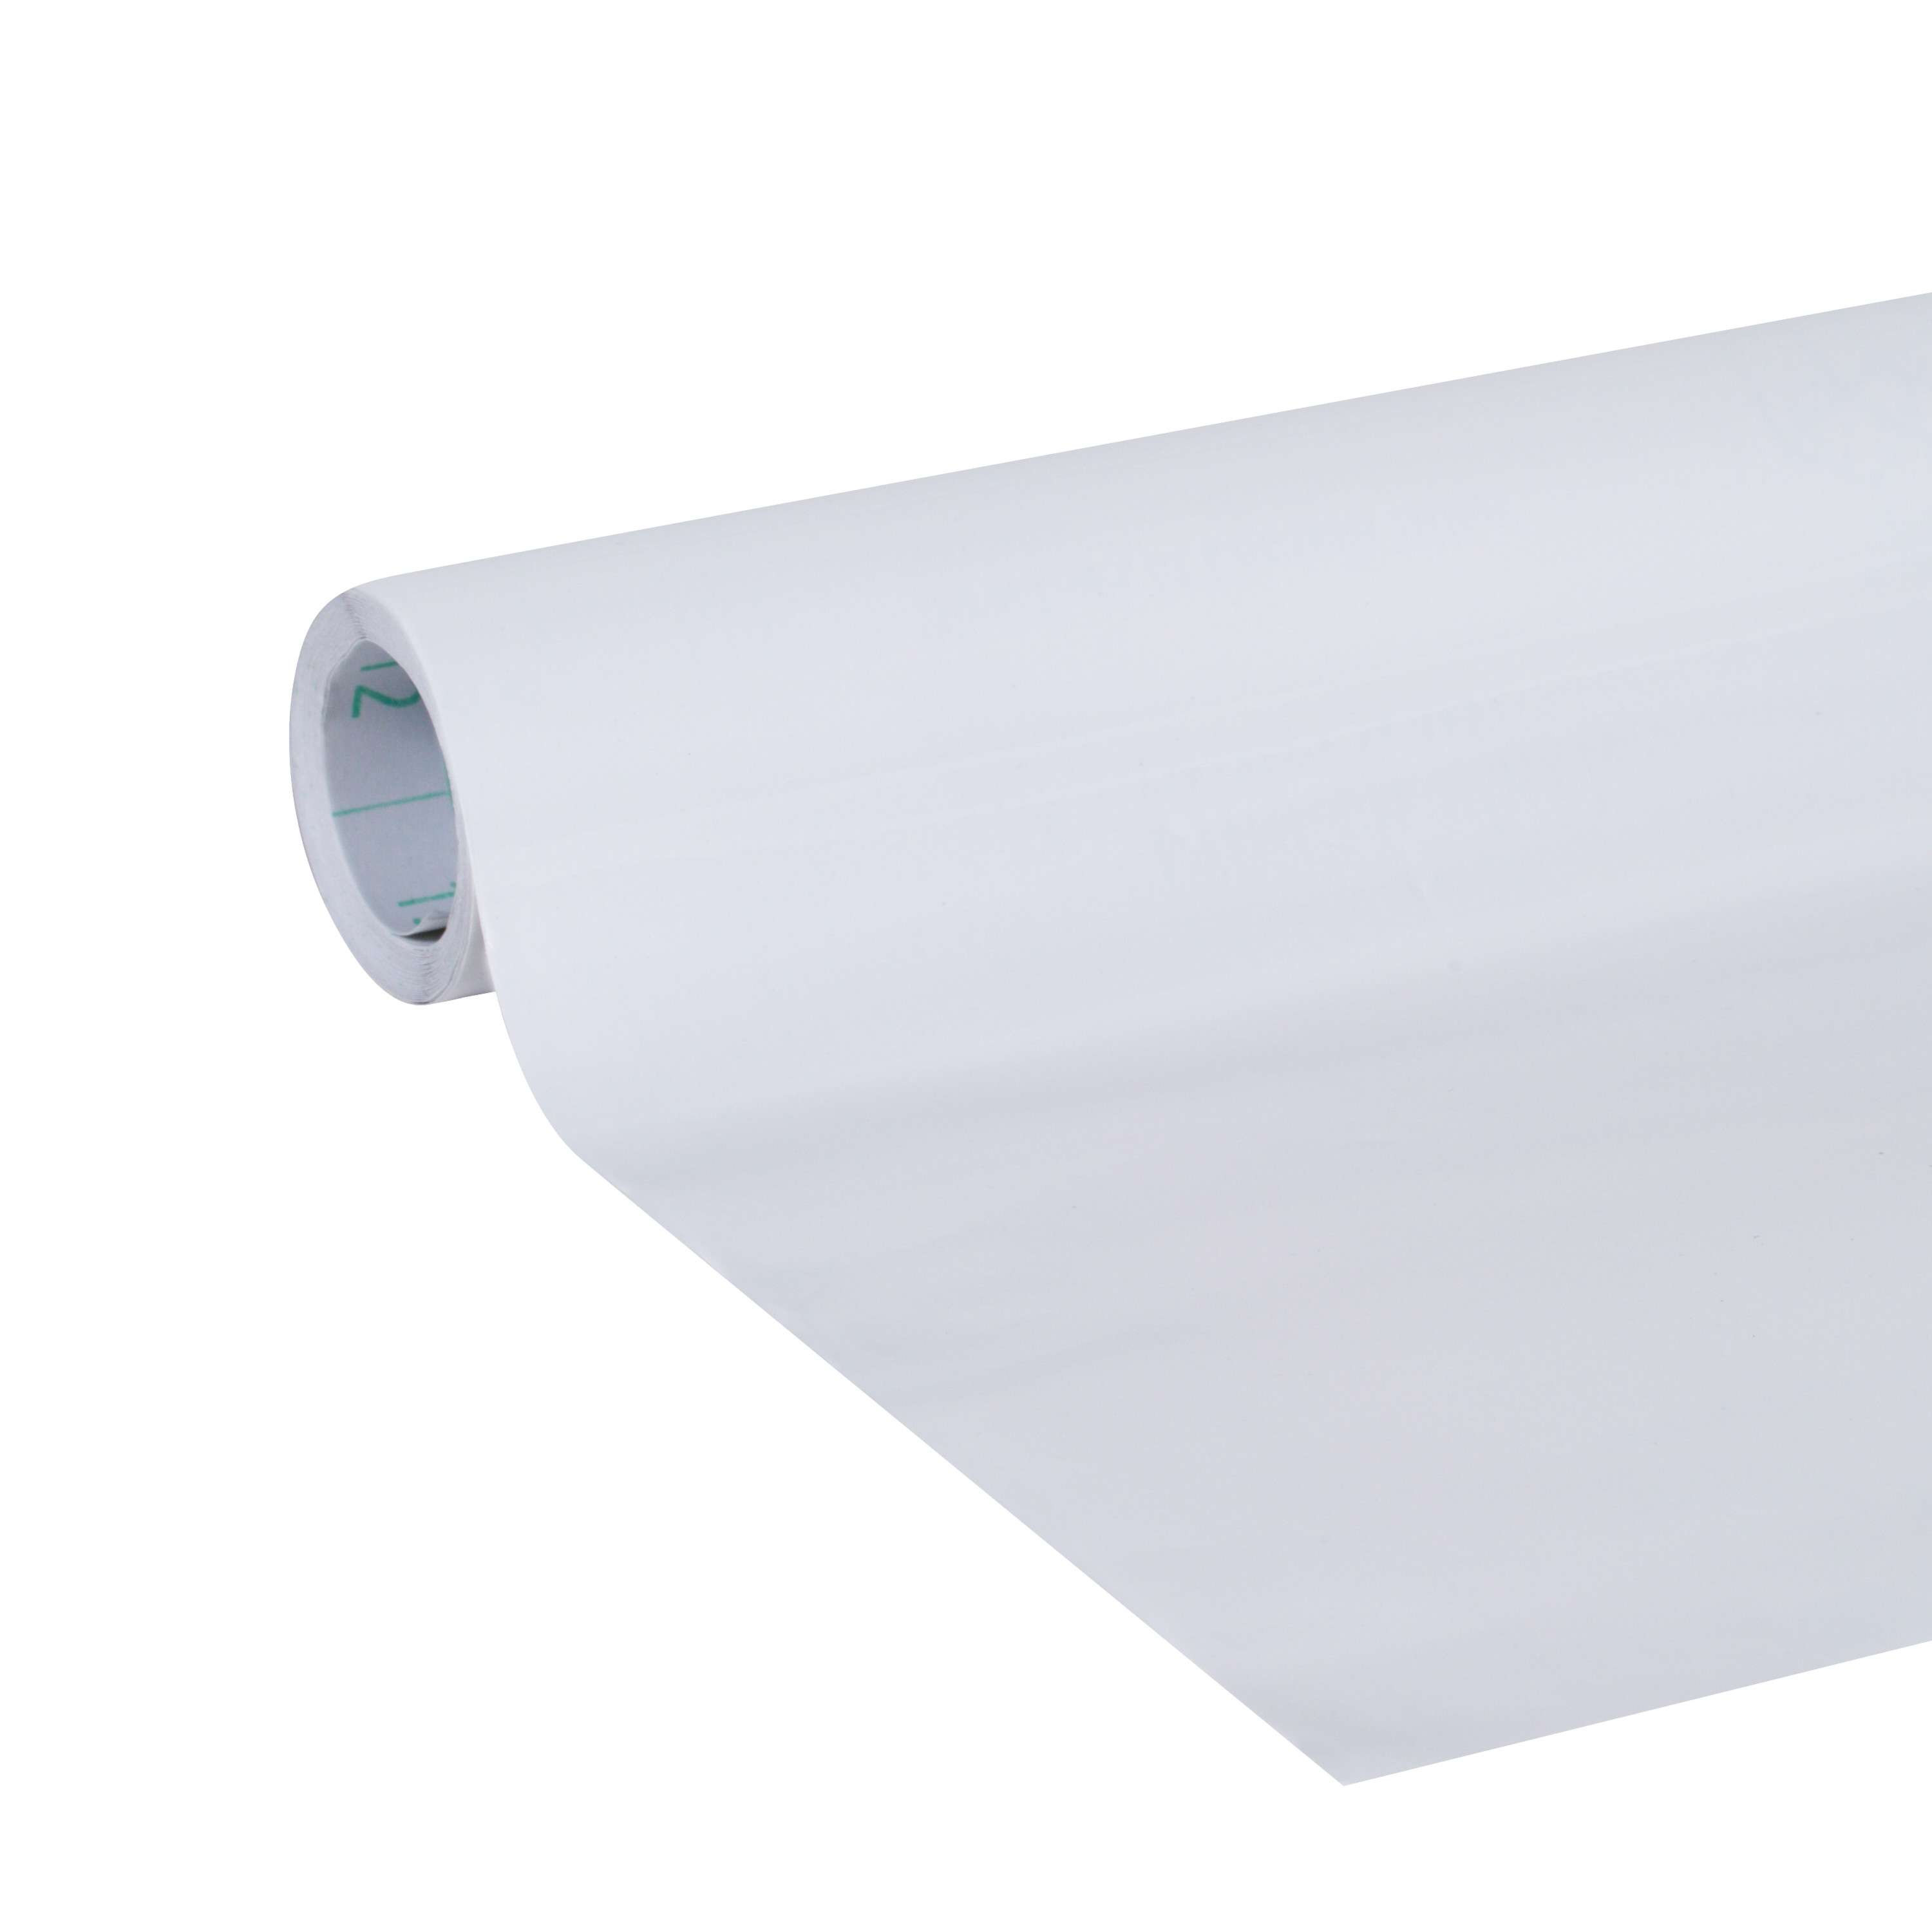 Duck EasyLiner Adhesive Solids White Shelf Liner